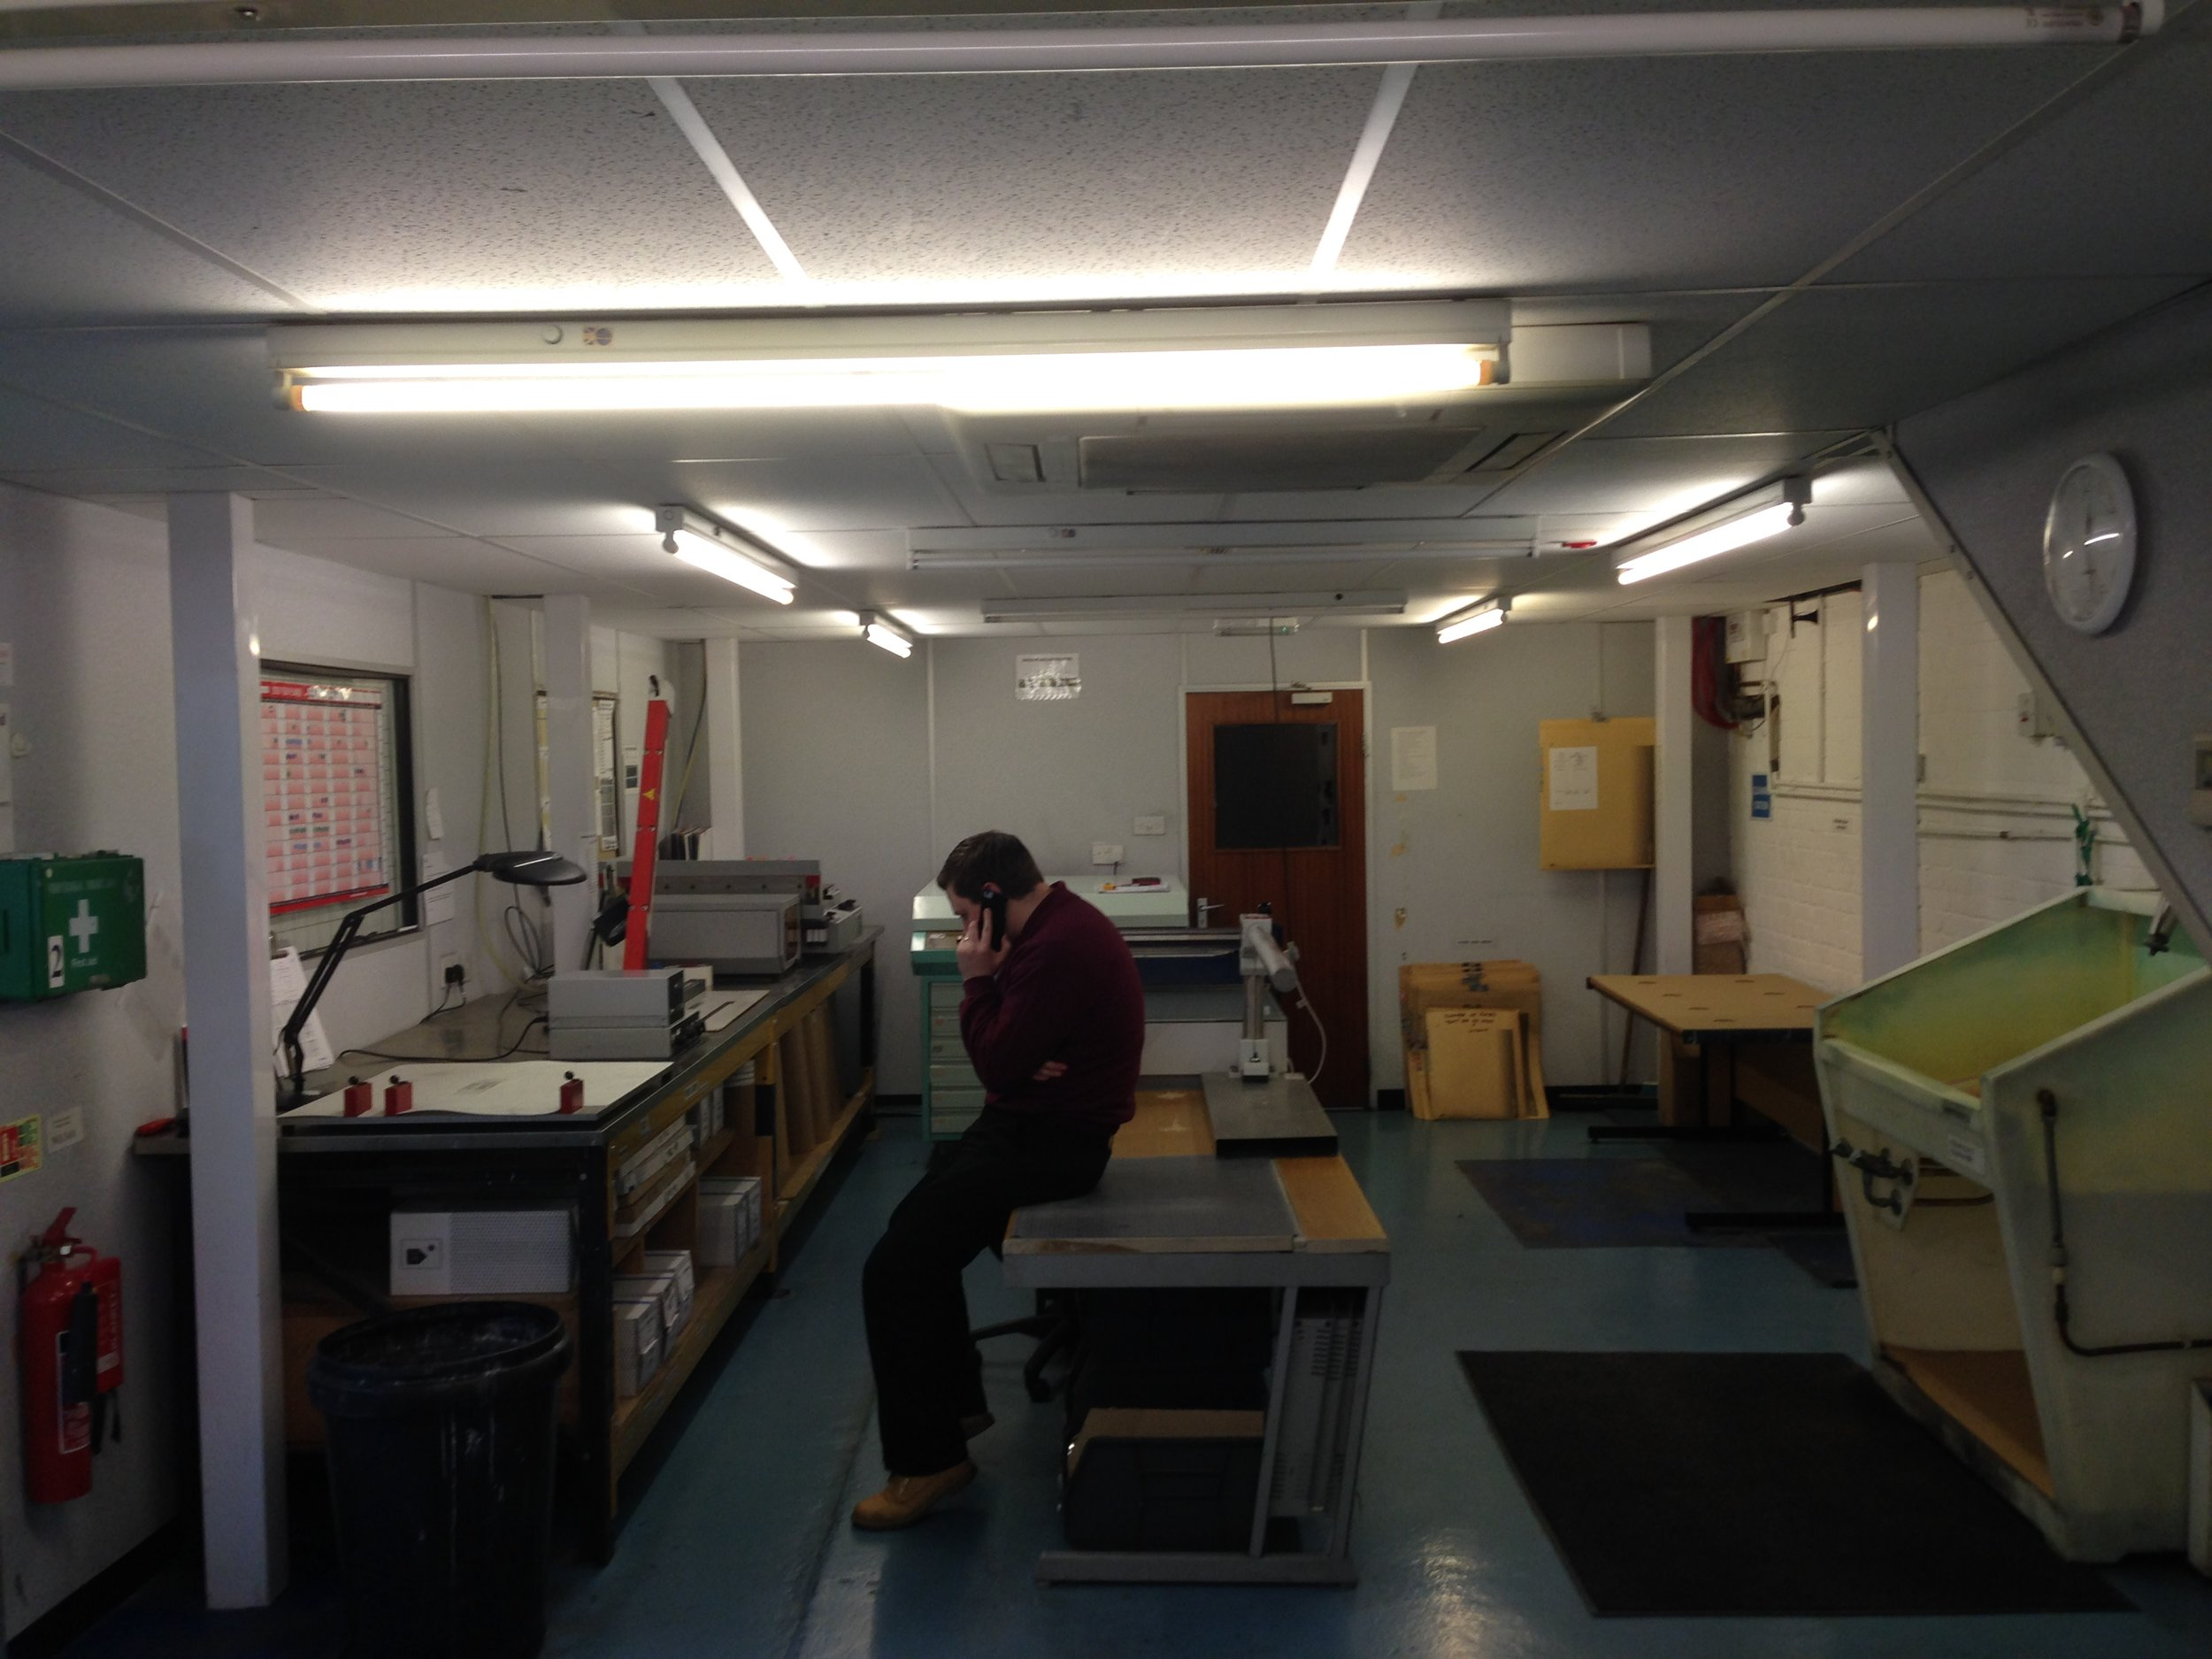 Office remodelling - design and refit - Littlehampton manufacturing sector-21